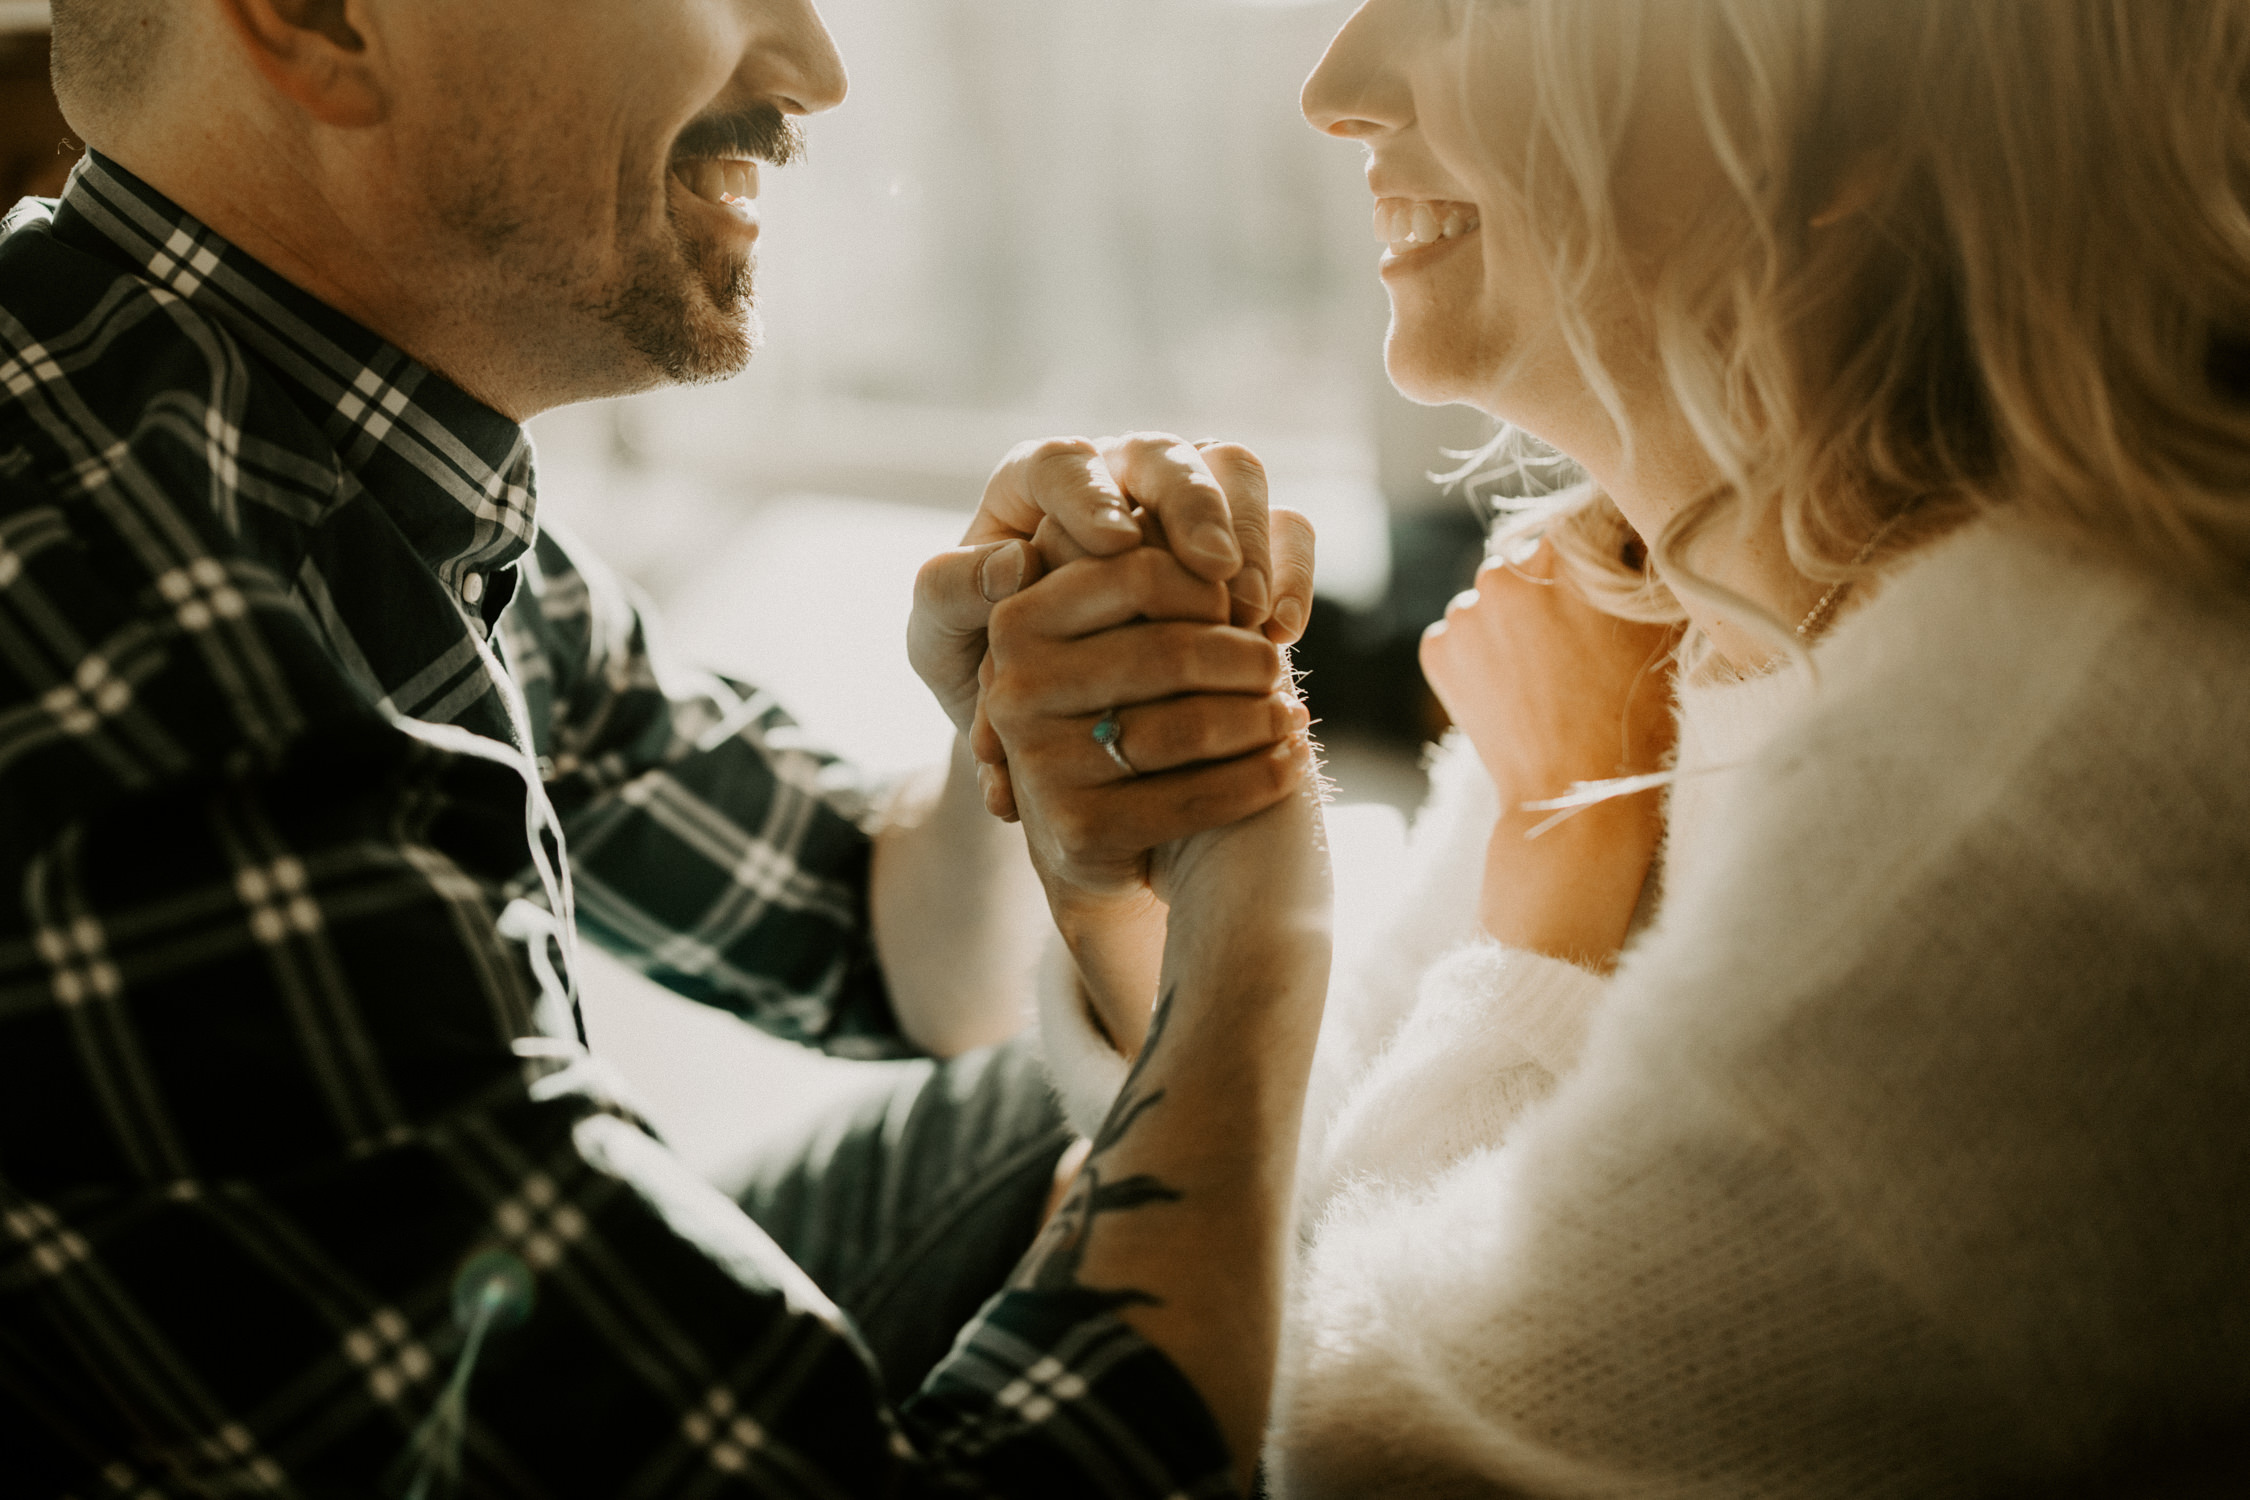 couple-intimate-in-home-session-northern-california-14.jpg